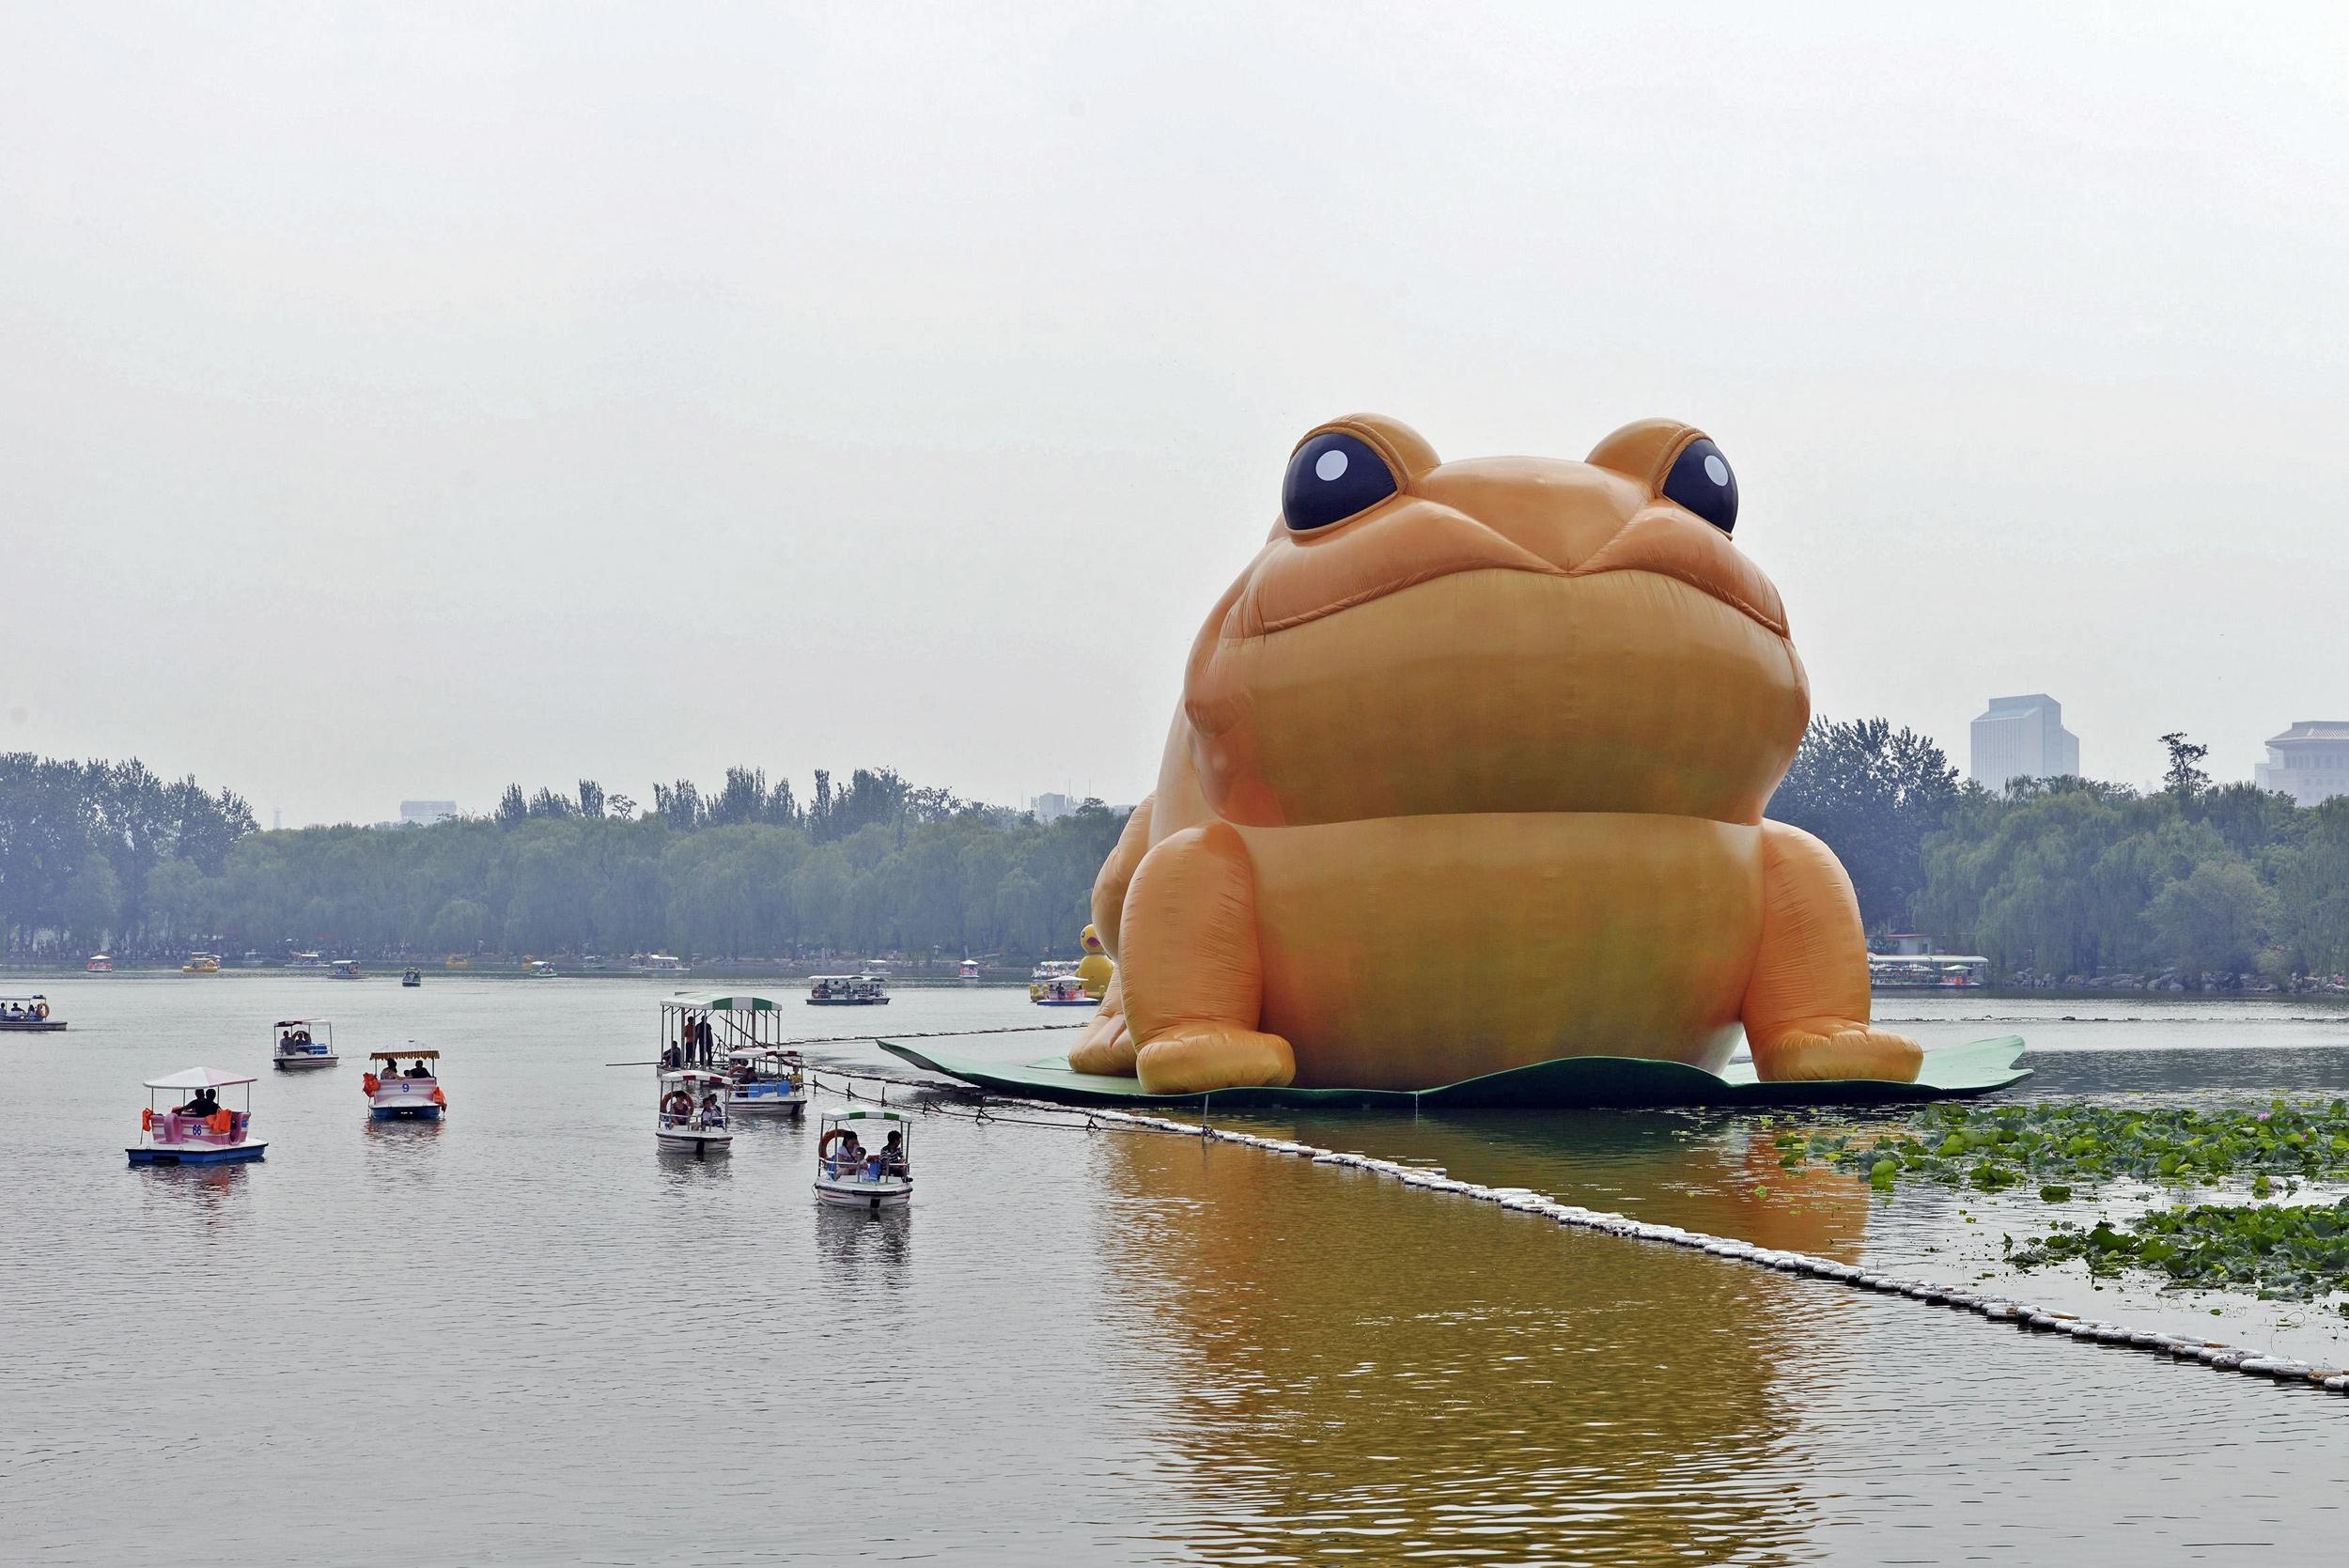 Image: A giant inflatable toad is seen floating on a lake at the Yuyuantan Park in Beijing